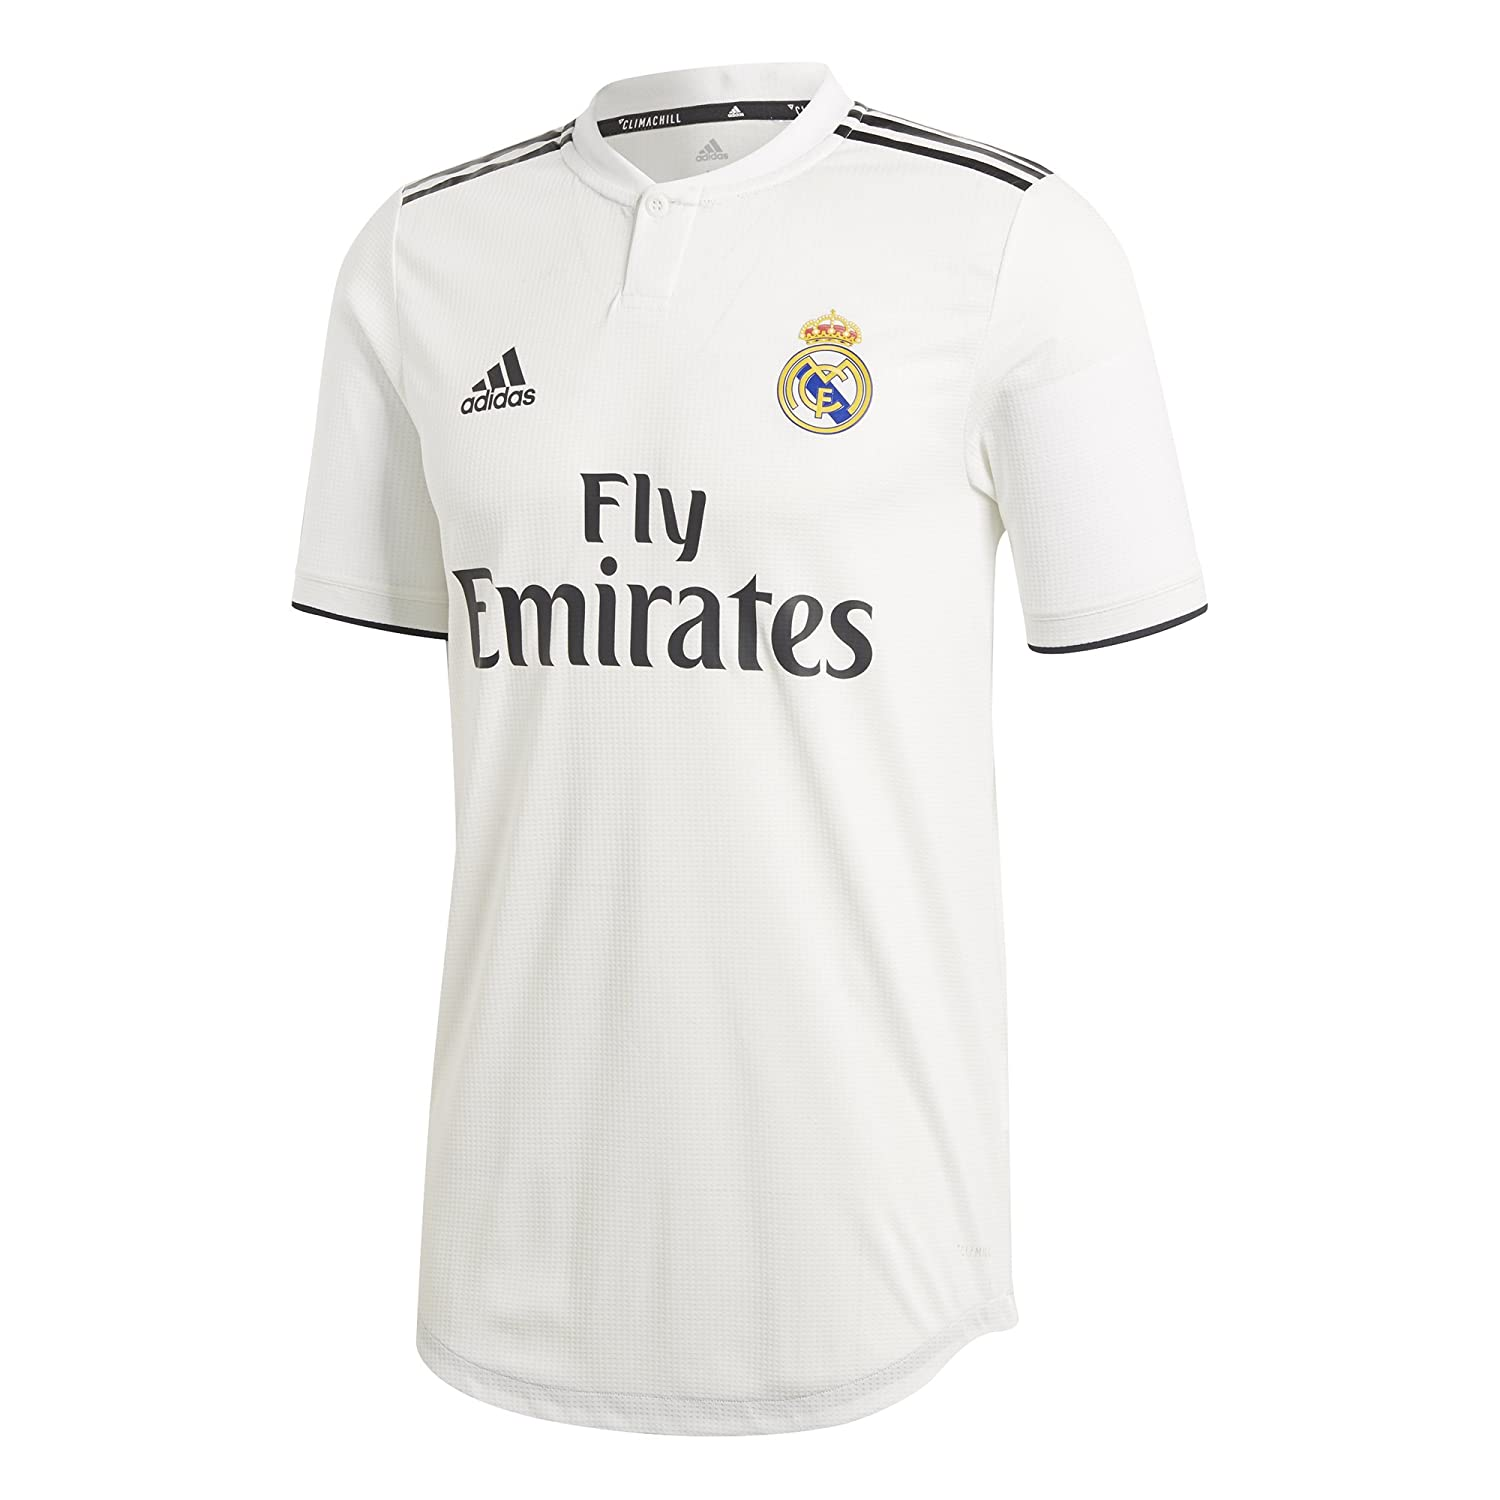 super popular 09b3a b5783 Amazon.com : adidas 2018-2019 Real Madrid Authentic Home ...